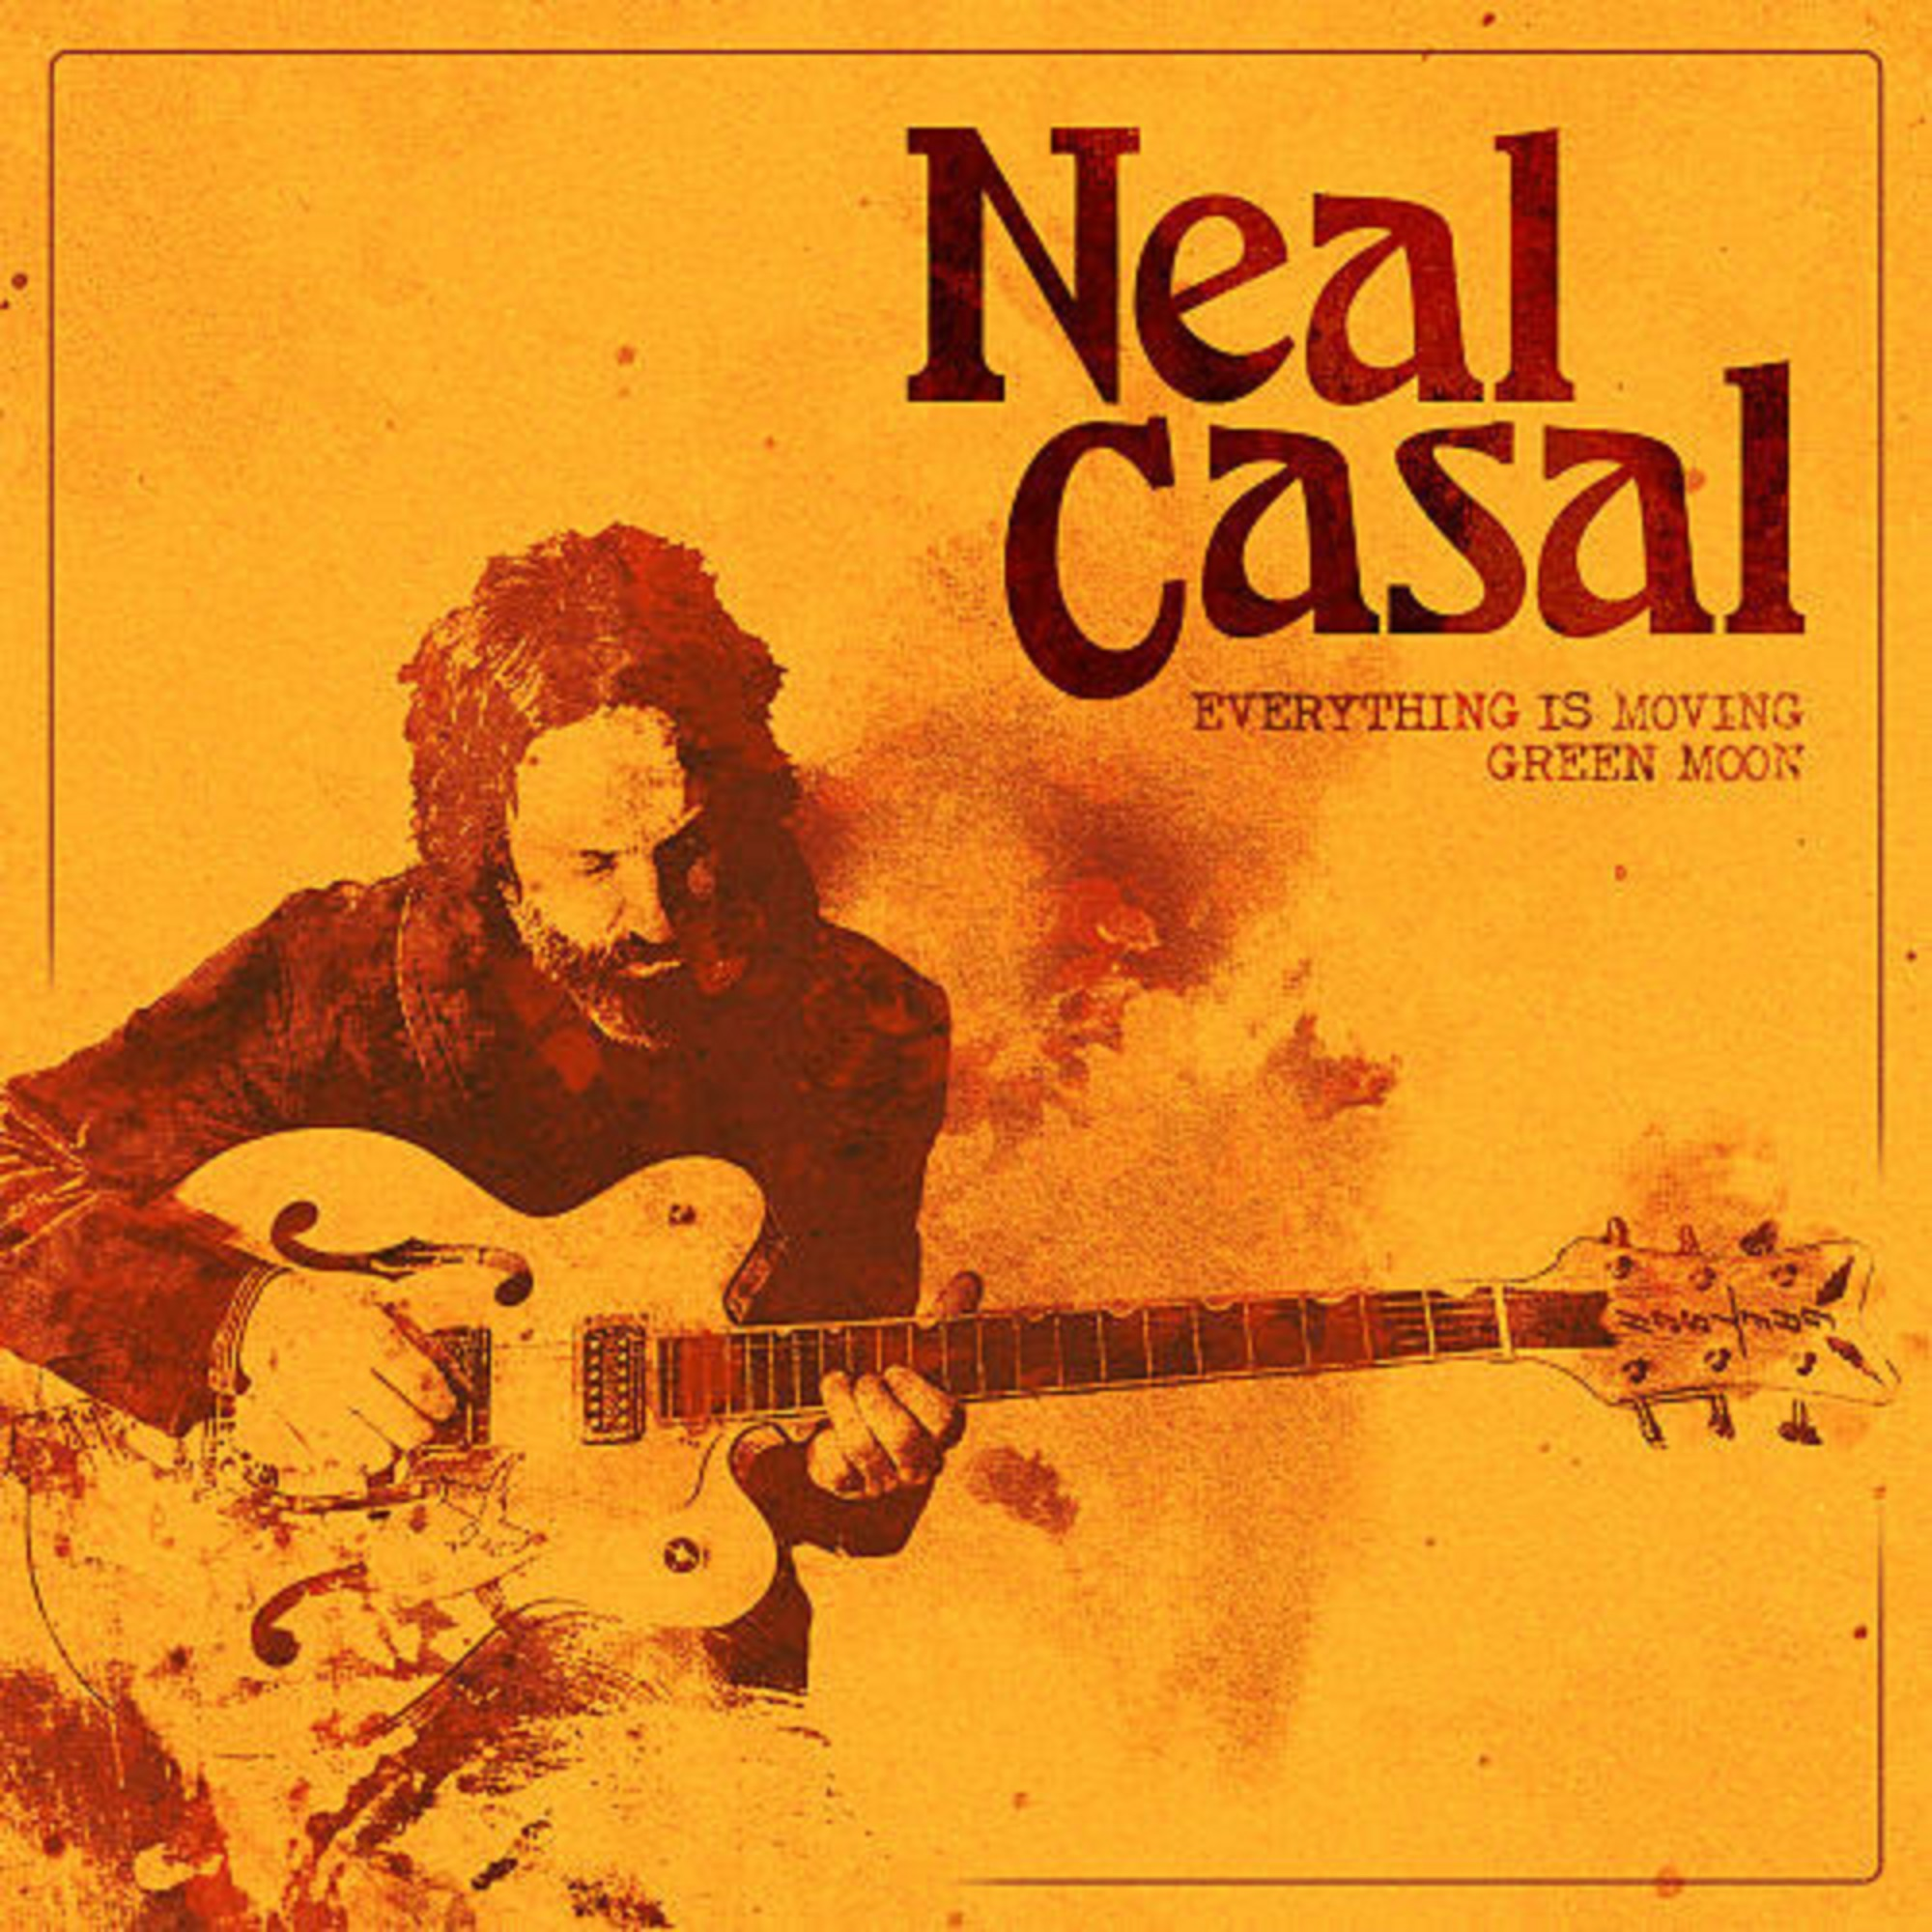 Neal Casal's Last Two Solo Recordings Out Today